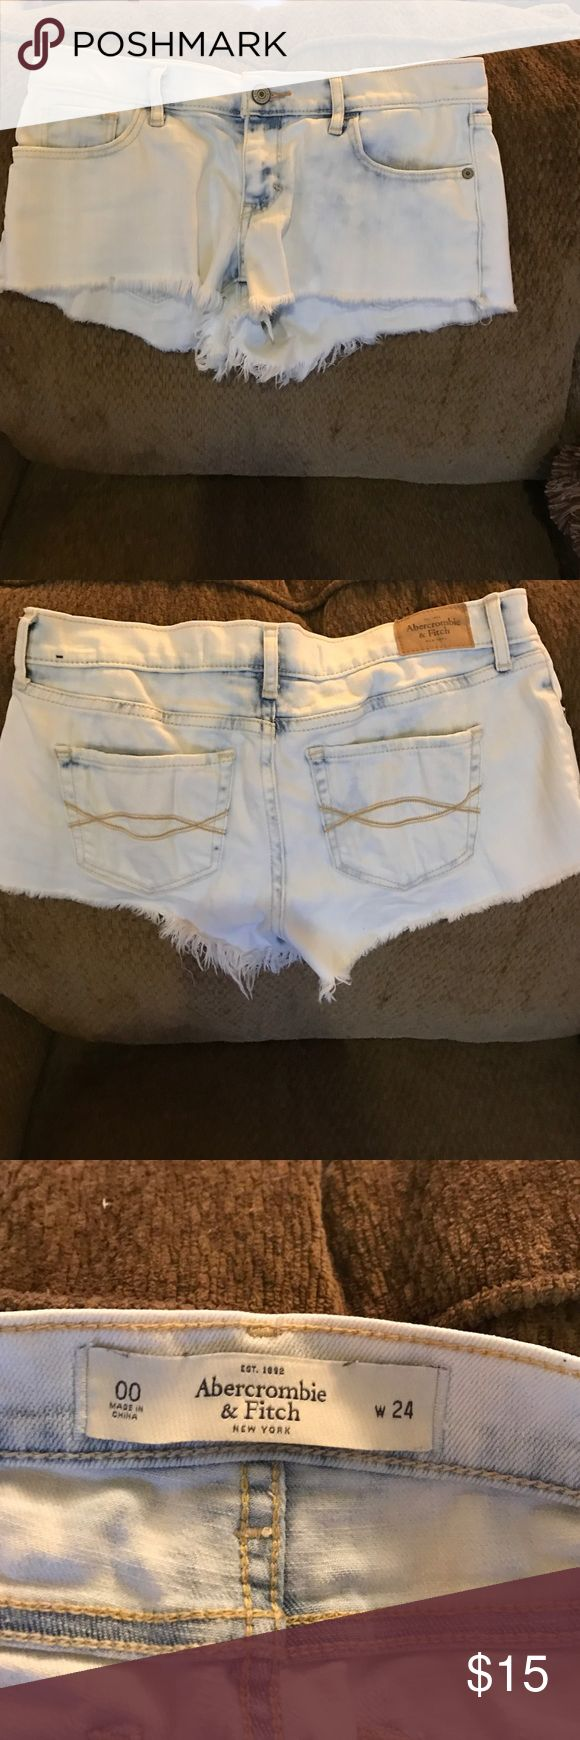 Abercrombie and fitch jean shorts Like new condition Abercrombie & Fitch Shorts Jean Shorts